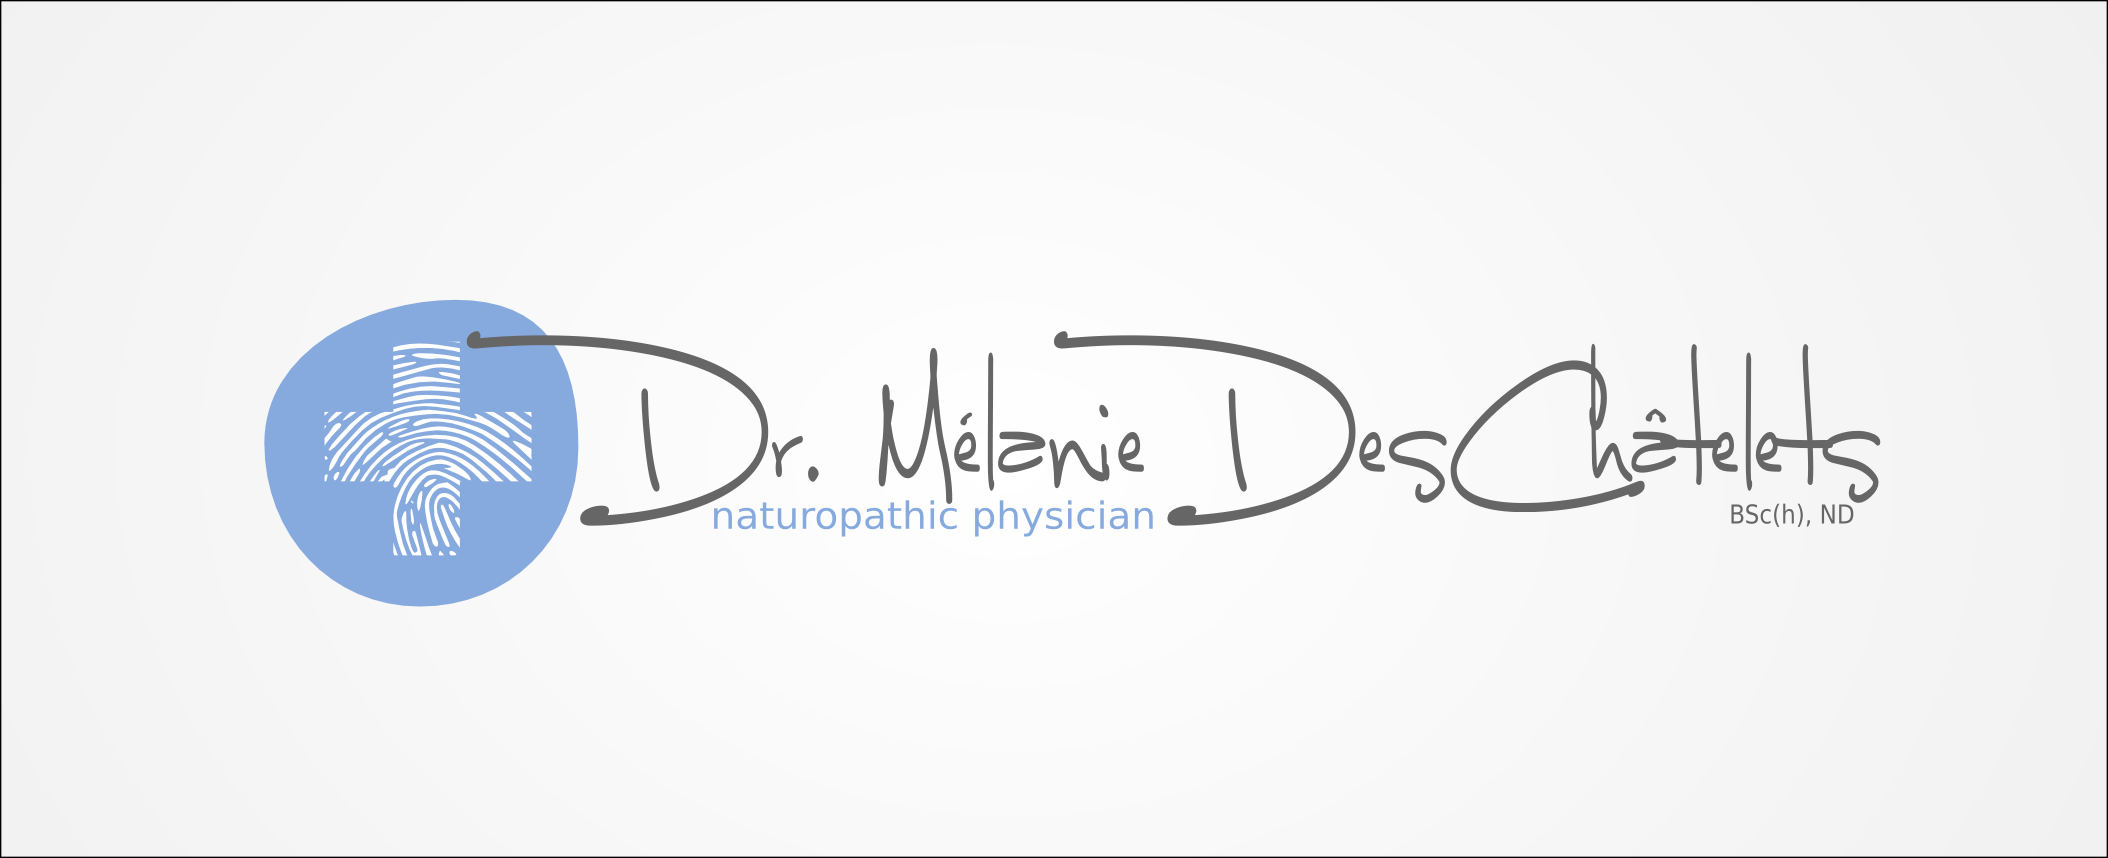 Logo Design by Andrew Bertram - Entry No. 154 in the Logo Design Contest Artistic Logo Design for Dr Mélanie DesChâtelets.